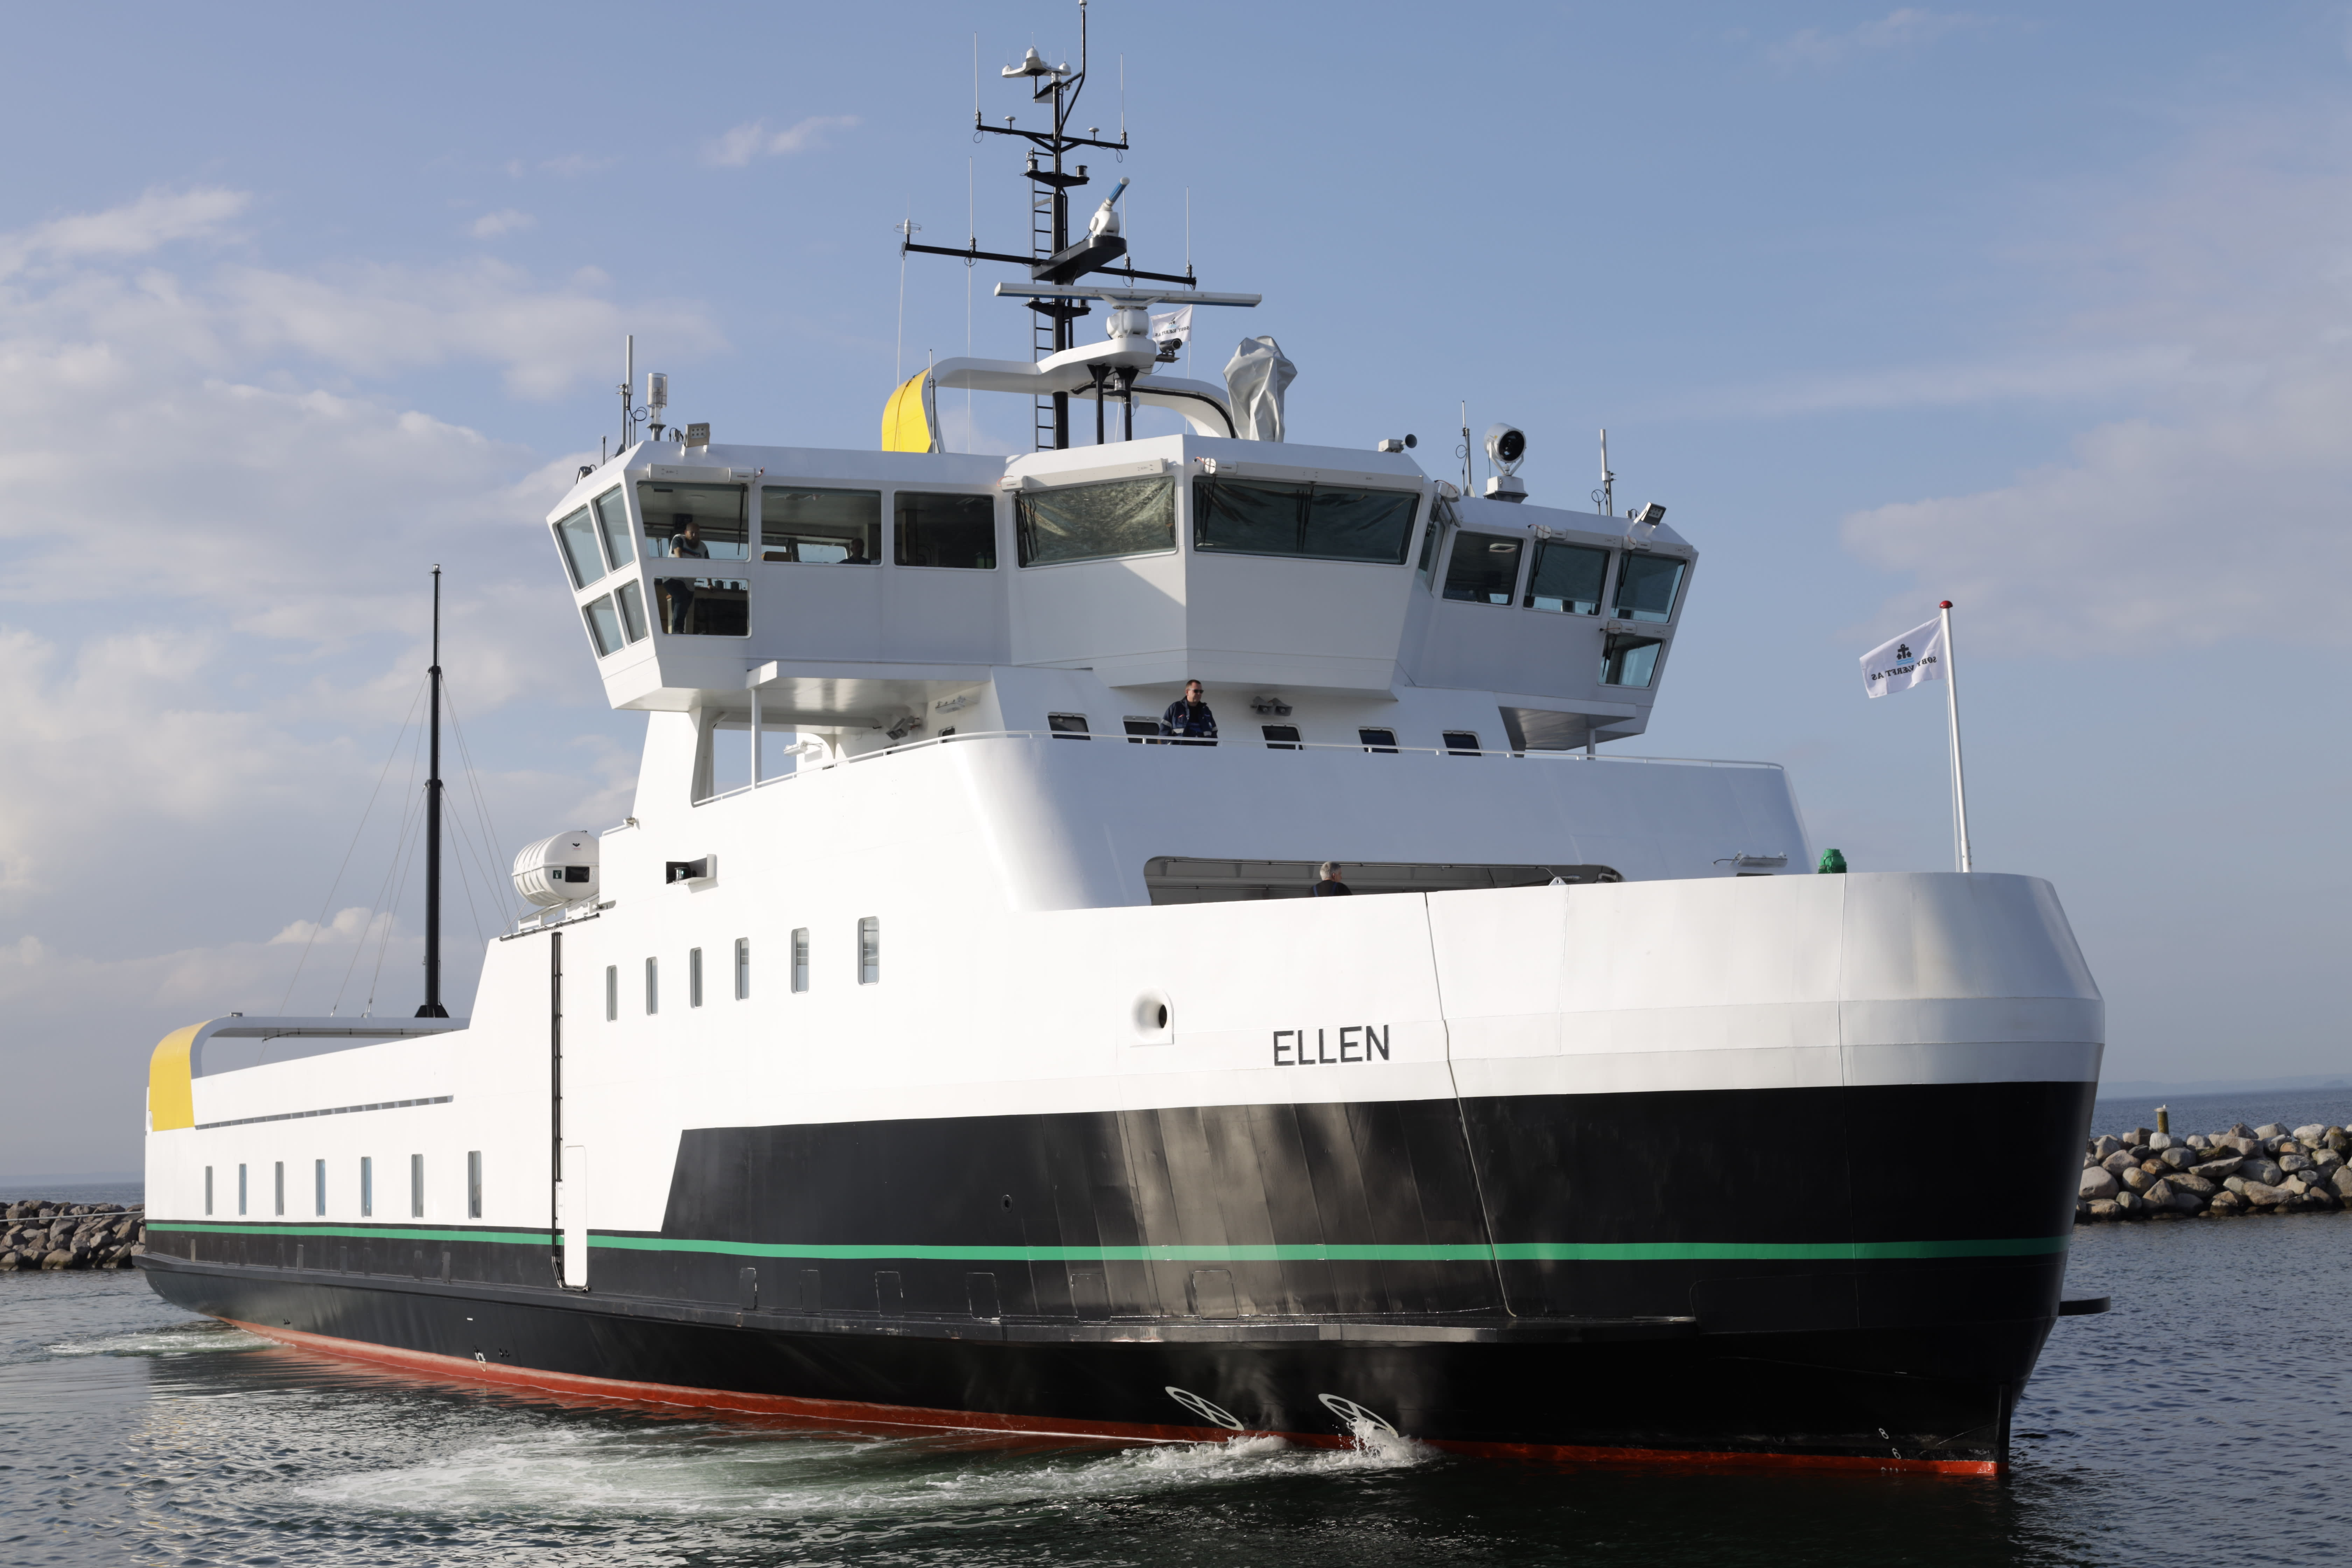 The world's 'largest all-electric ferry' has completed its maiden voyage